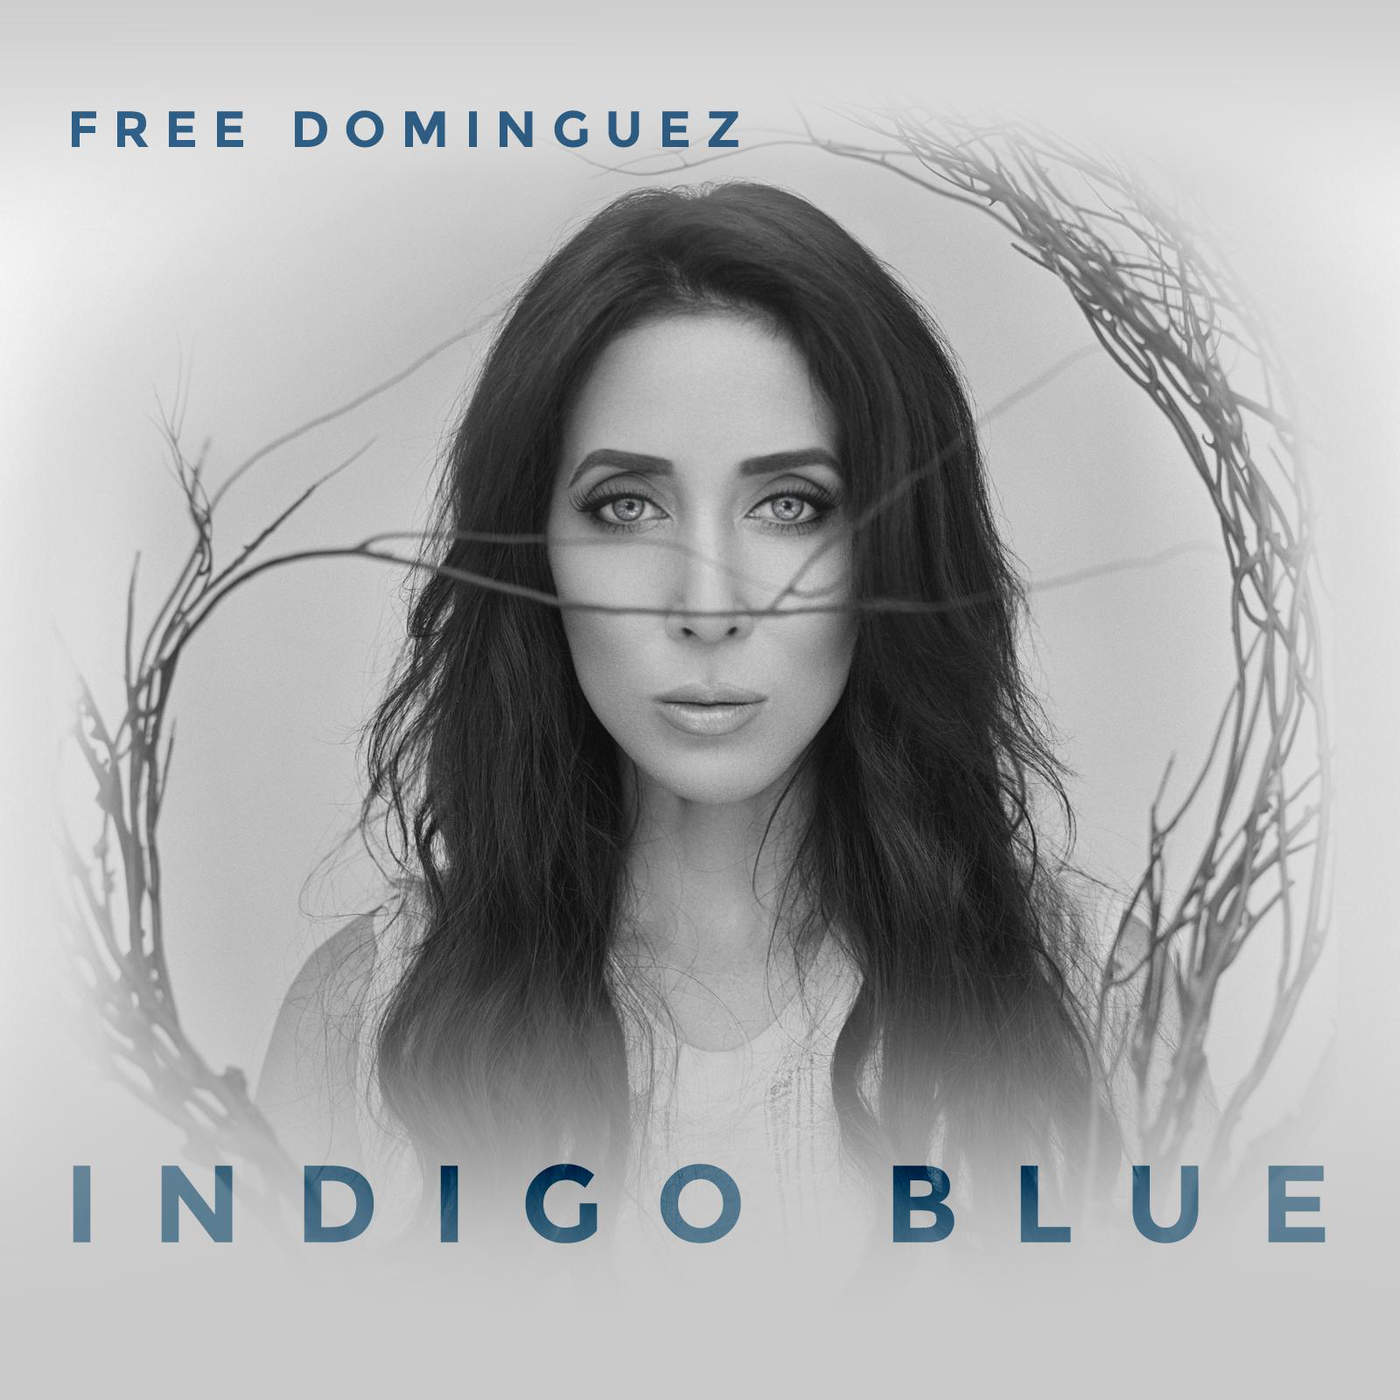 Free Dominguez - Indigo Blue (2015)